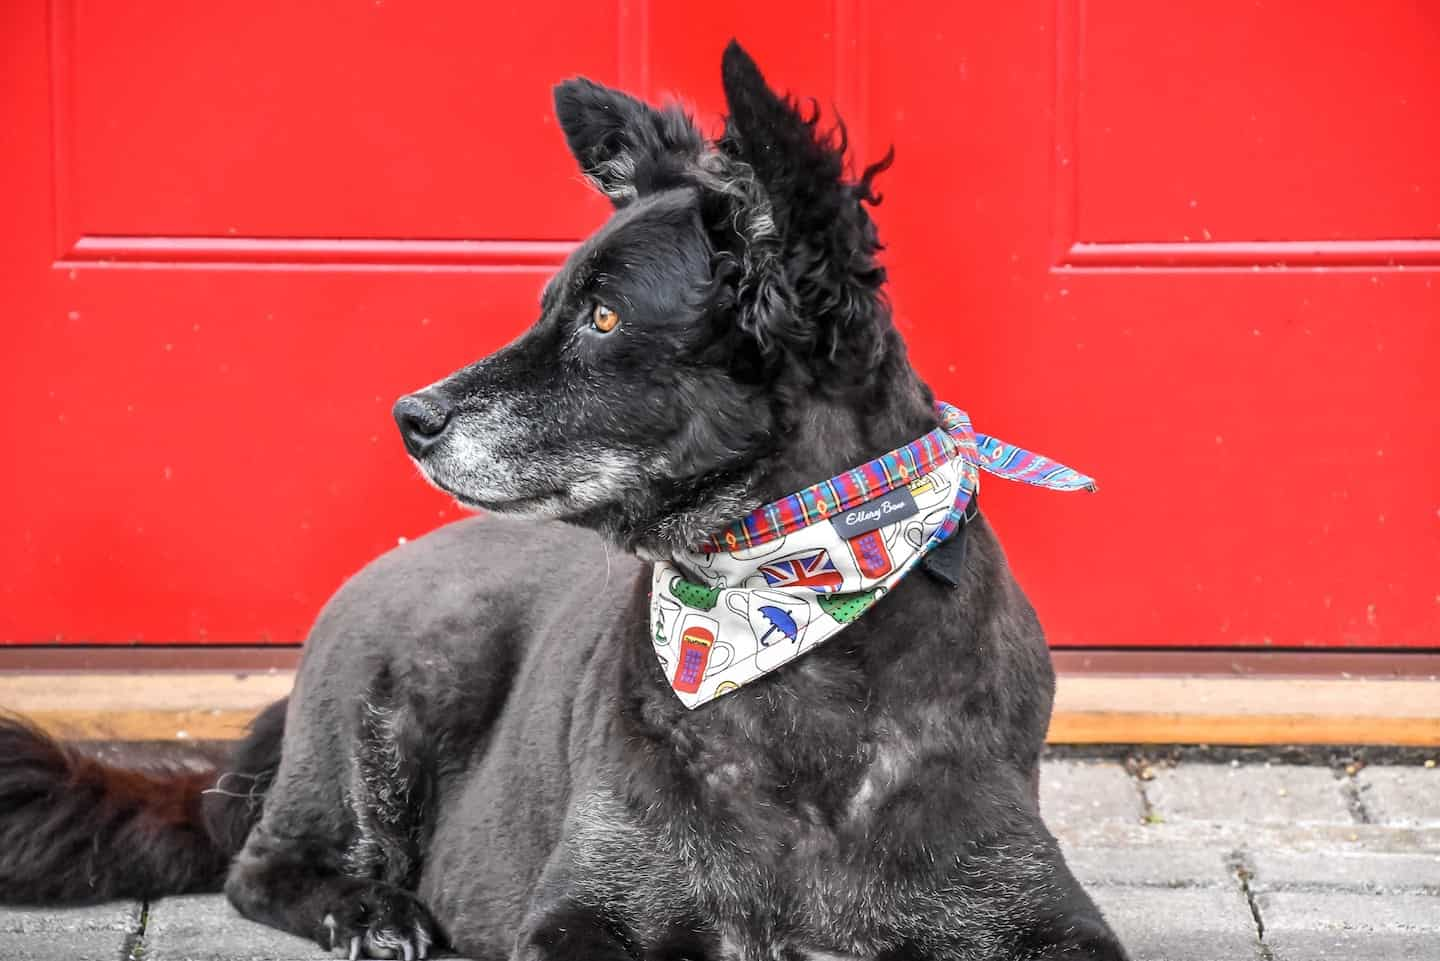 London Dog Events On This Week 15 - 18 November - Belinha in Ellery Bow Bandana